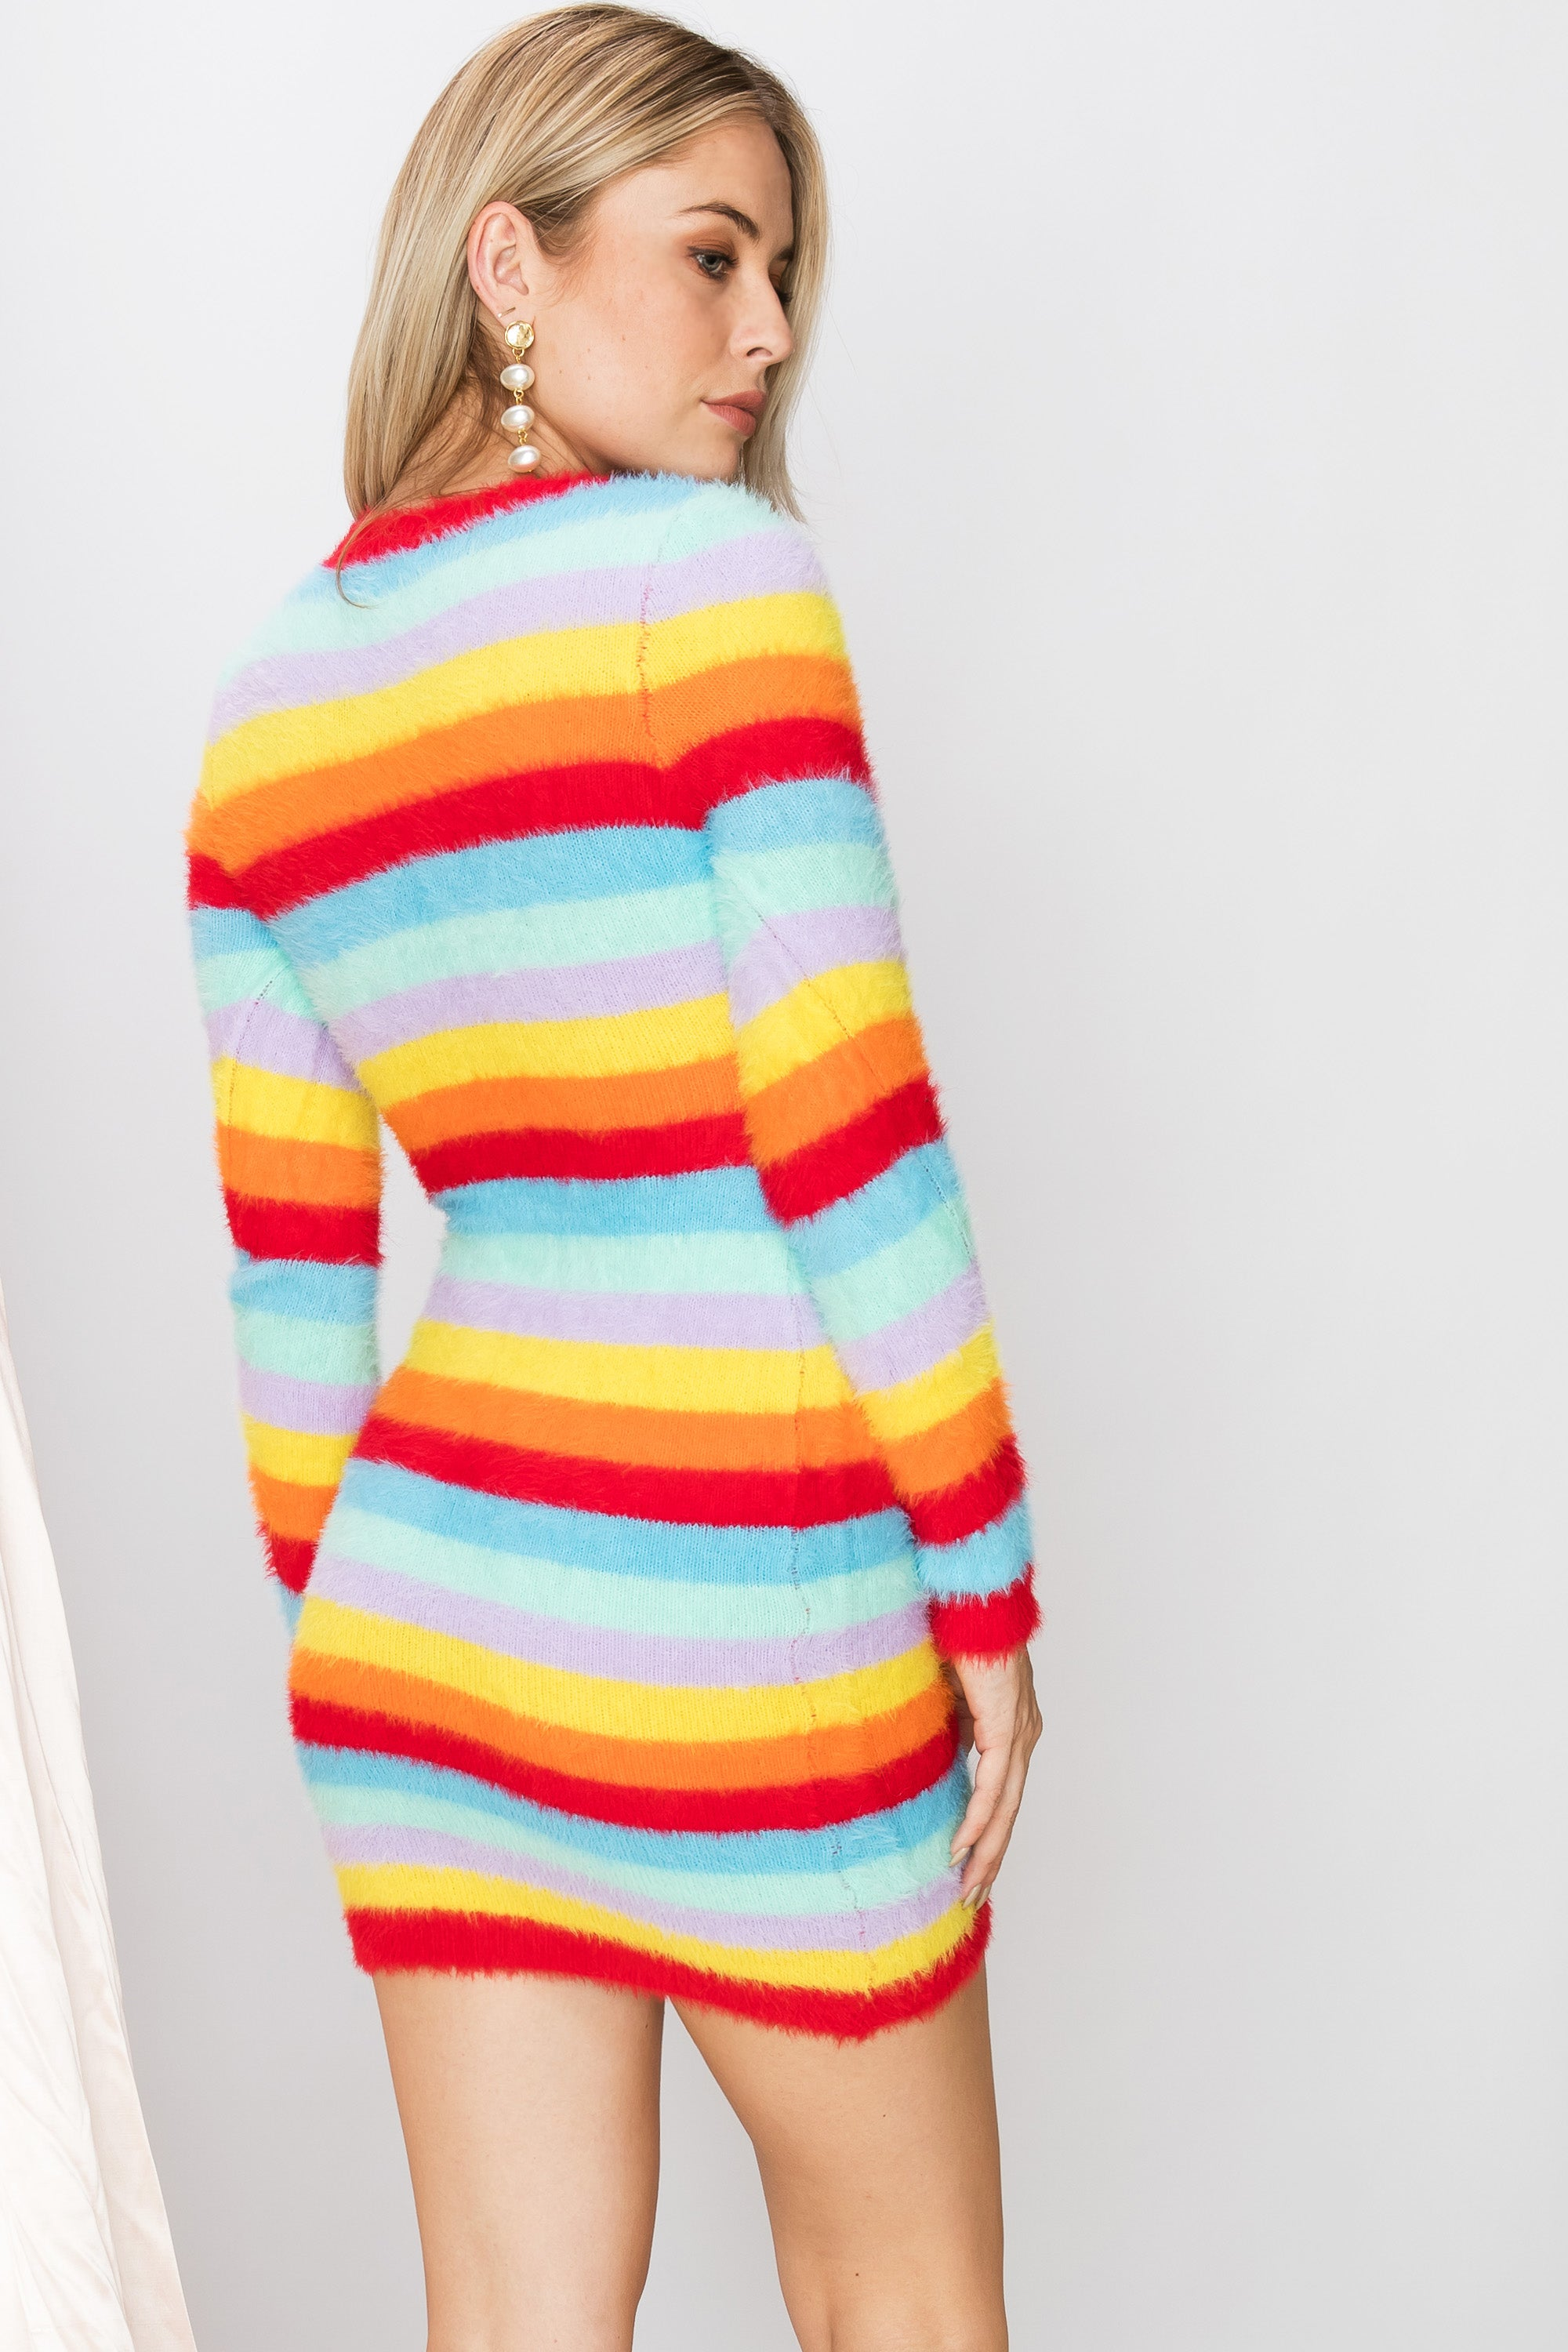 Miley Fuzzy Rainbow Dress (Pre-Order)